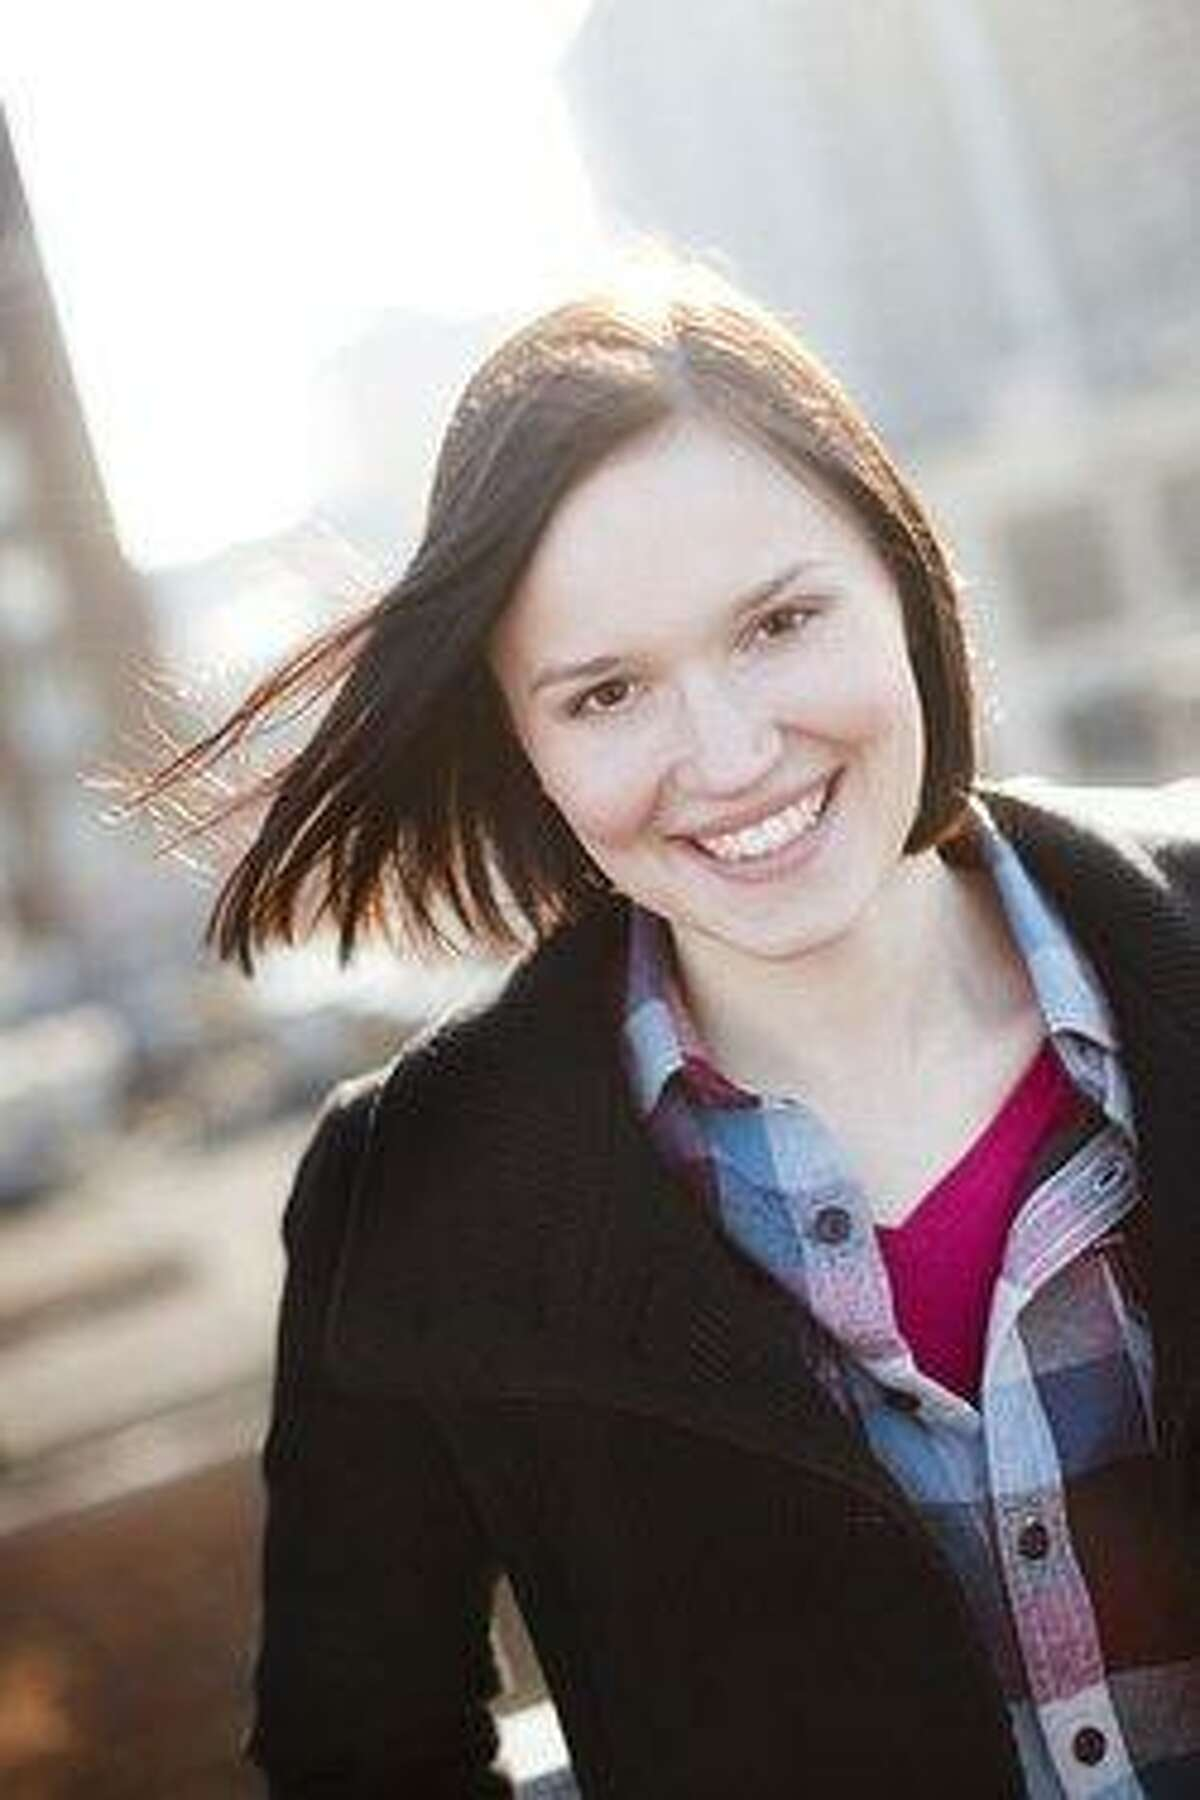 YA author Veronica Roth is the best-selling author of the 'Divergent' trilogy.